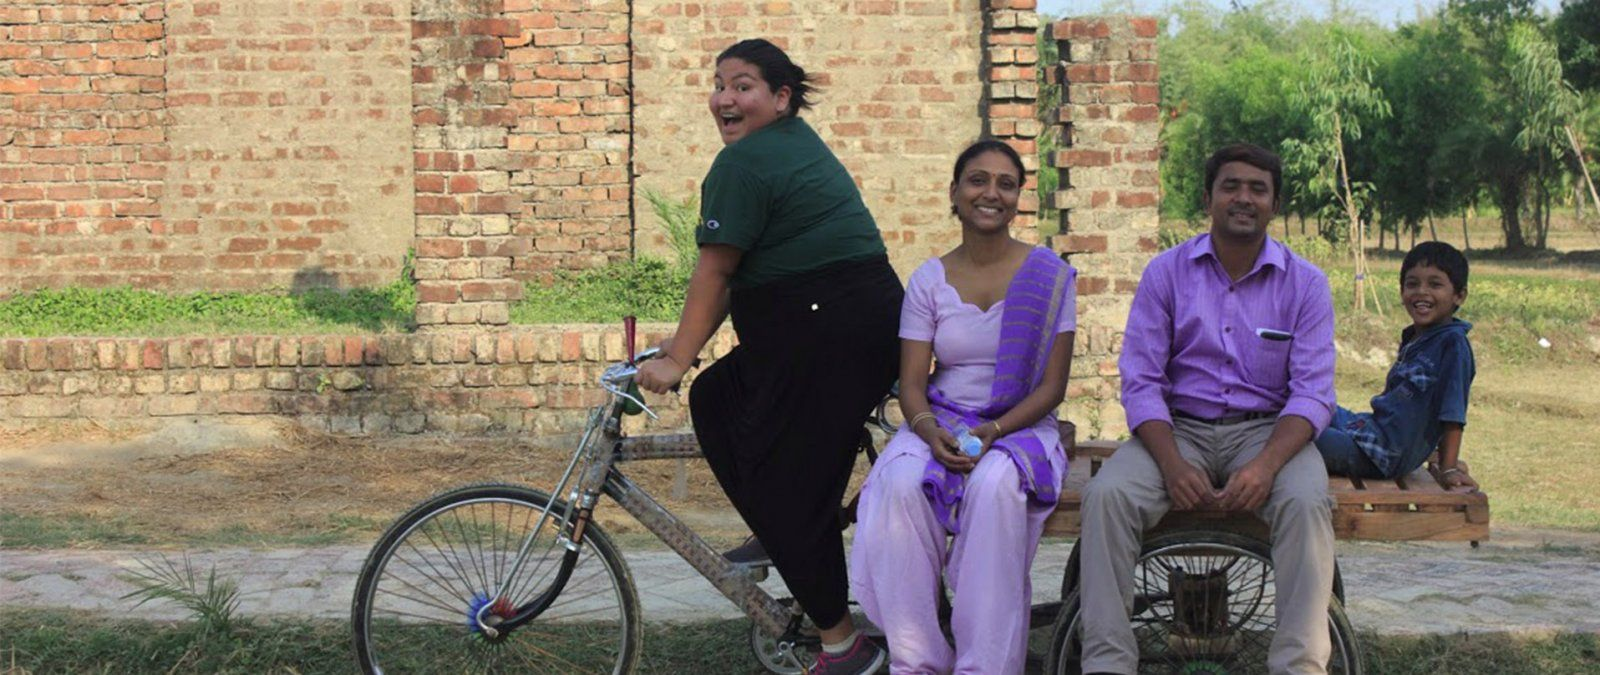 A student pedals a bike carrying a family in India.